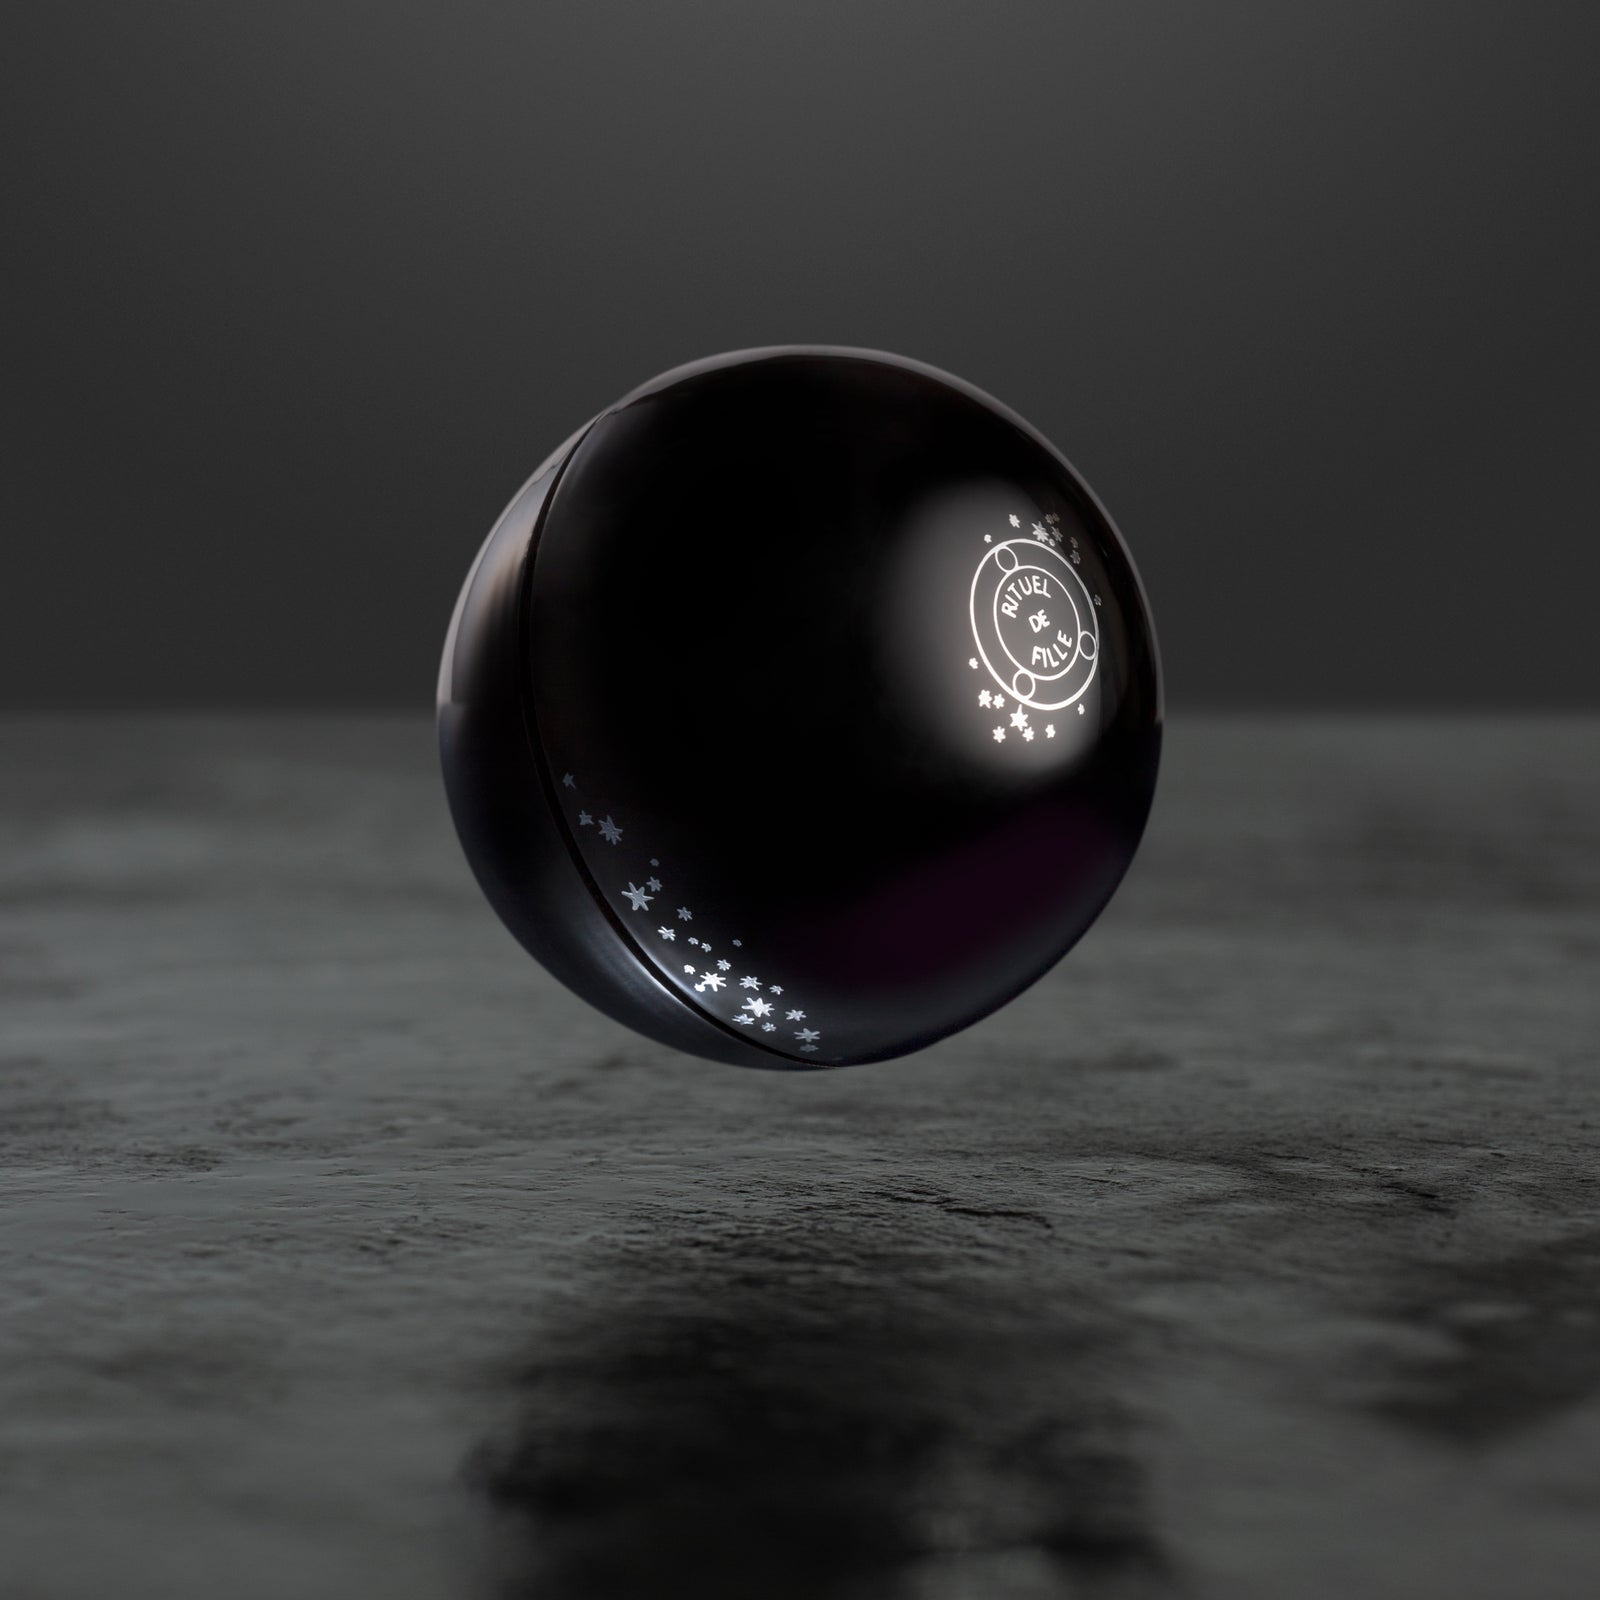 The Black Orb Seance: 3 to Share